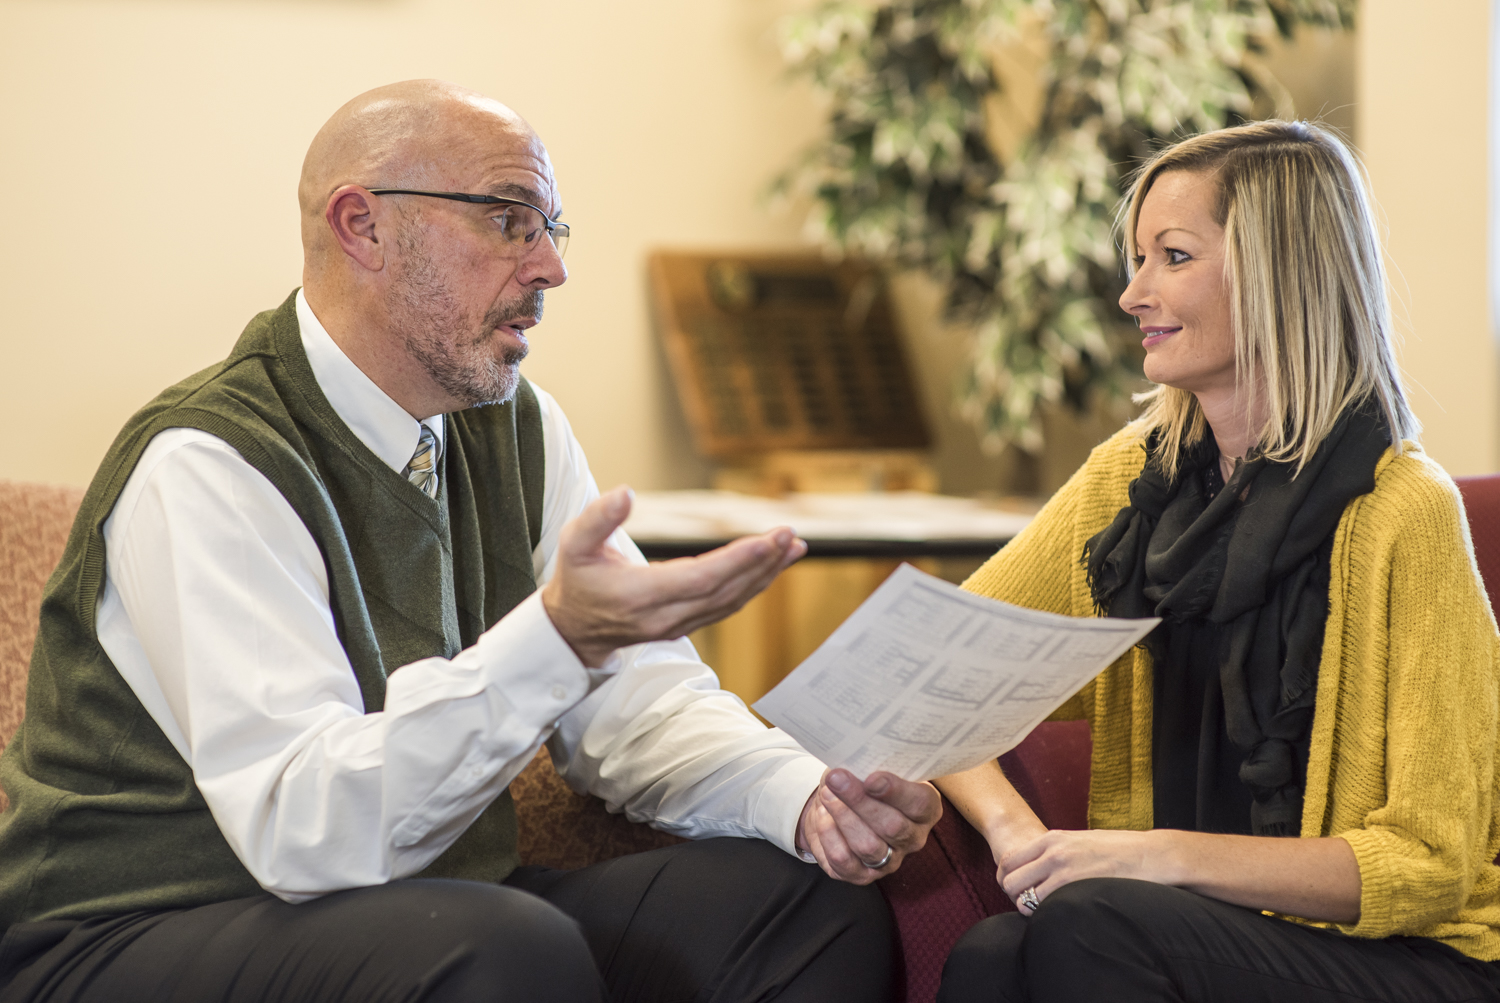 A man and woman chatting and reviewing a document.